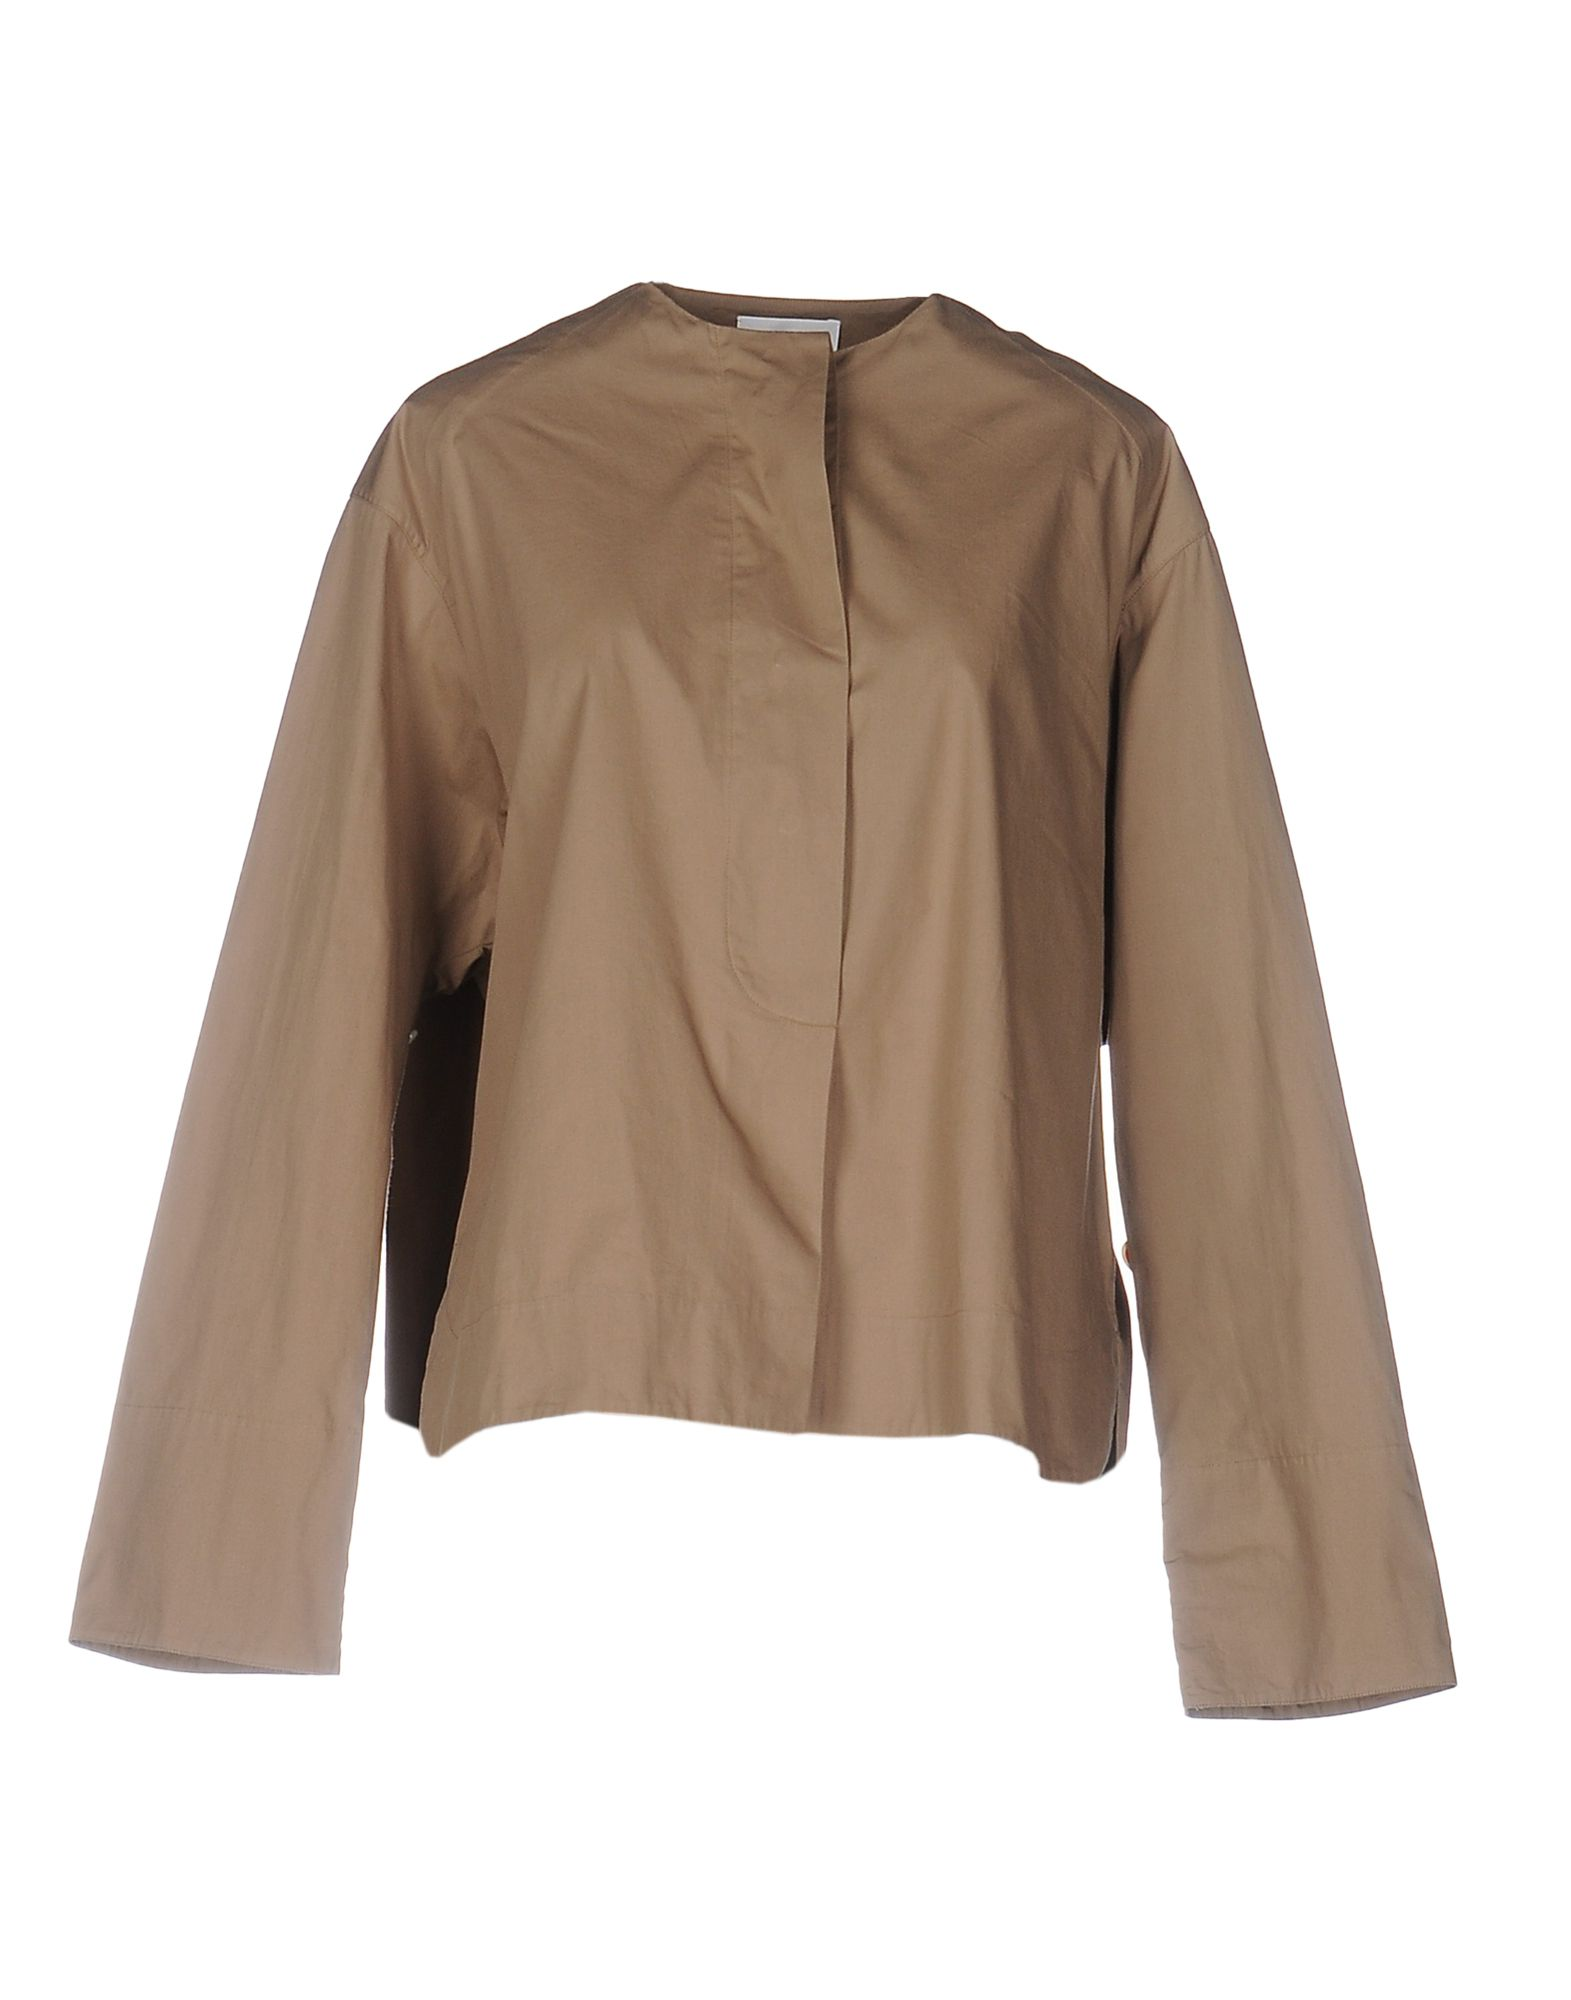 LAURENCE BRAS Blouse in Khaki